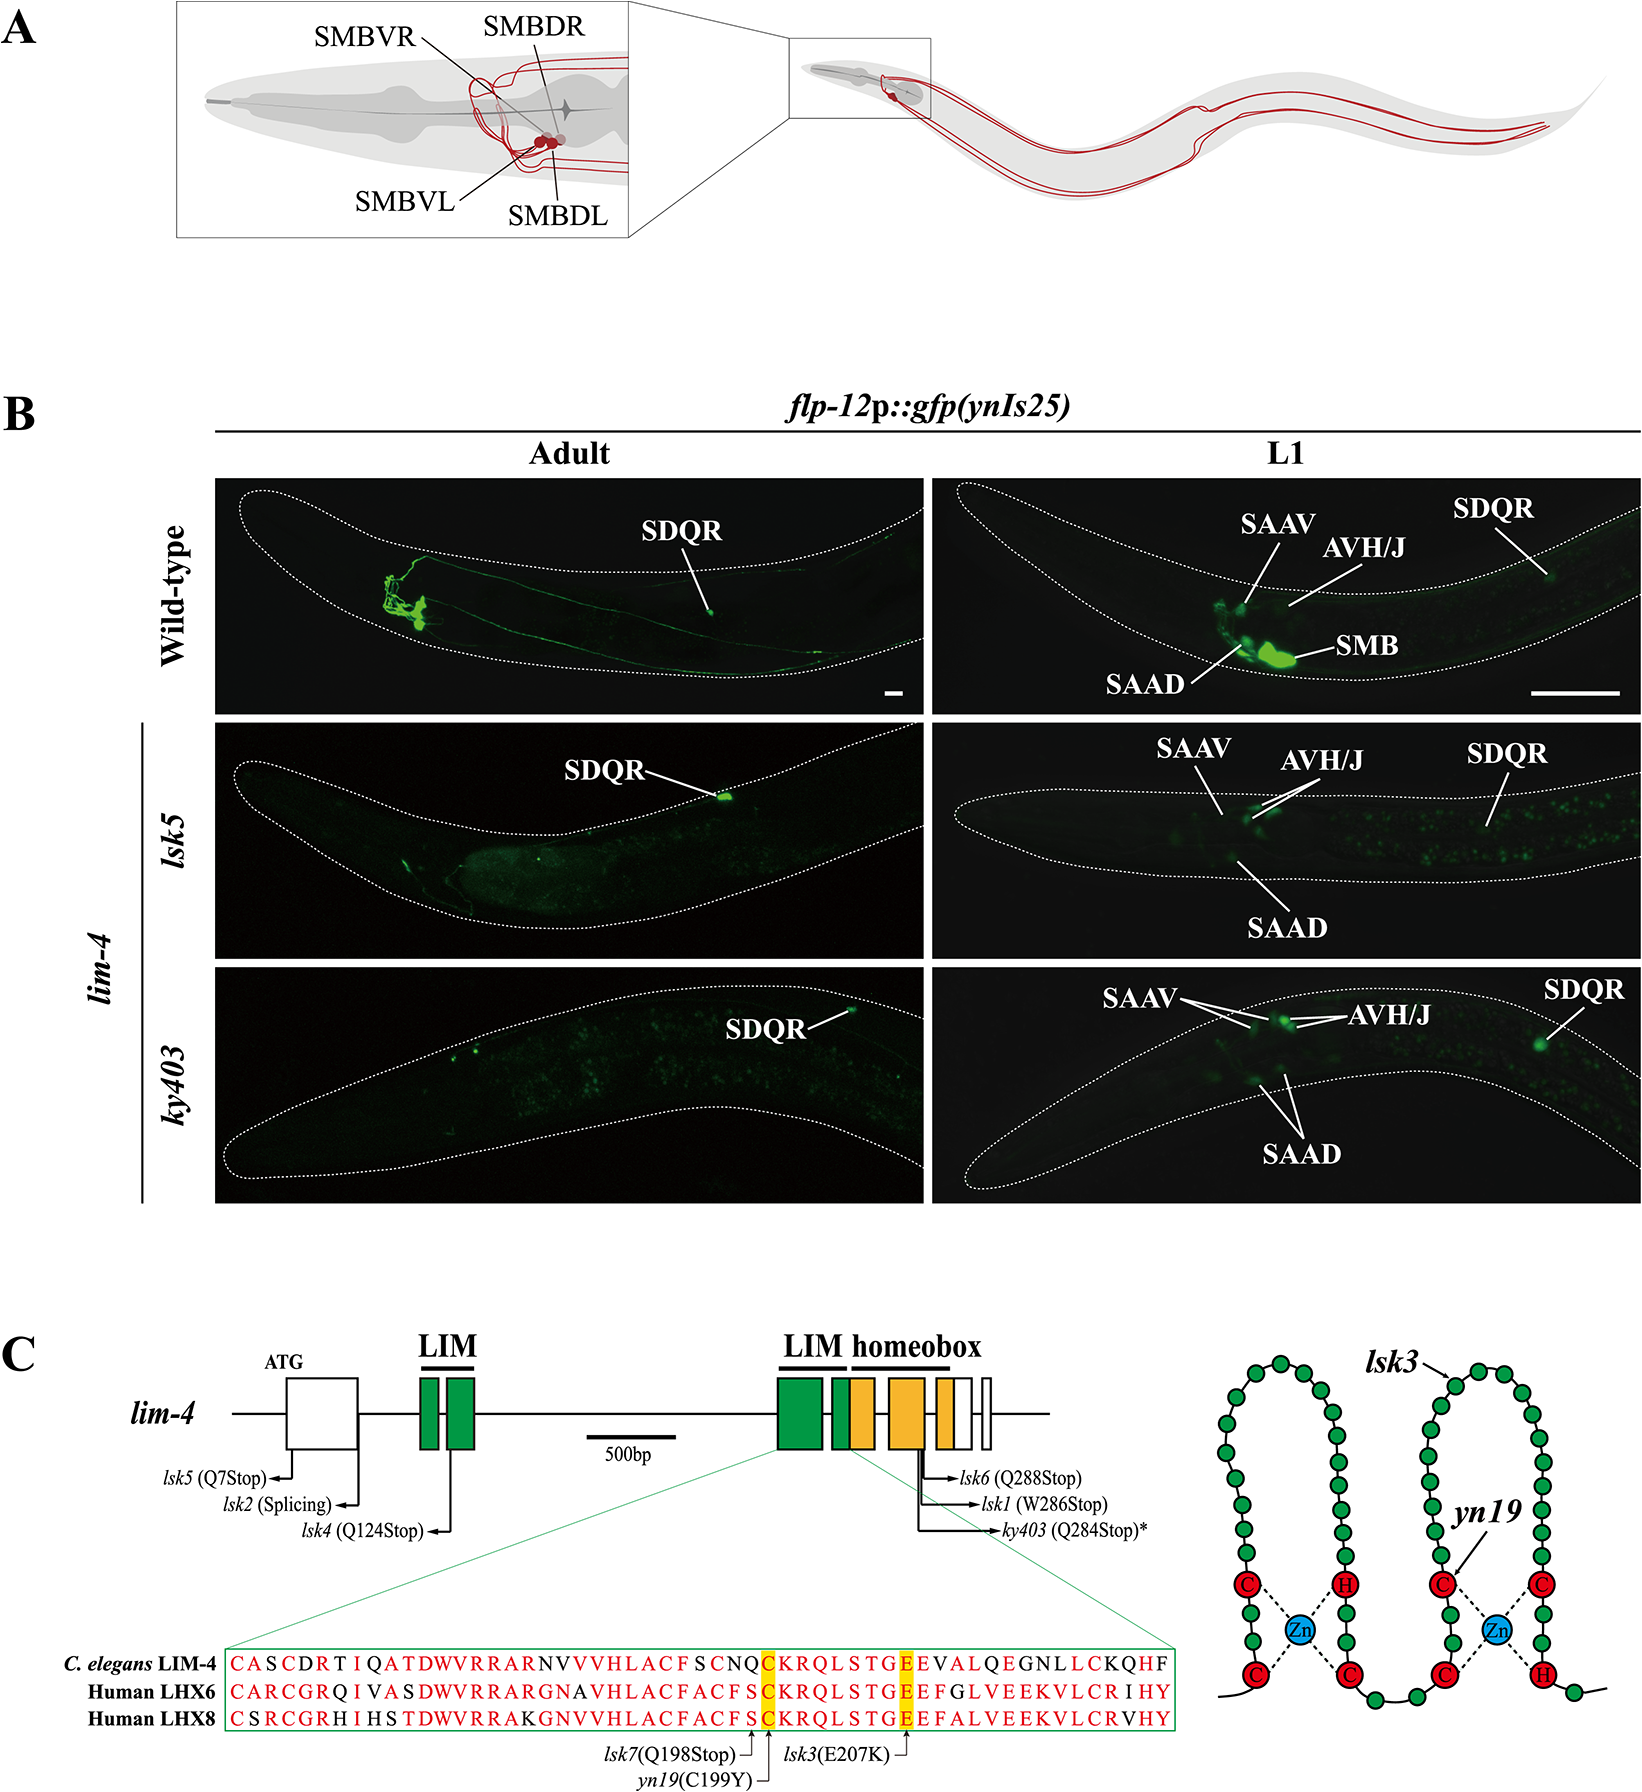 Expression of a <i>flp-12</i> neuropeptide reporter is abolished in the SMB neurons of <i>lim-4</i> mutants.